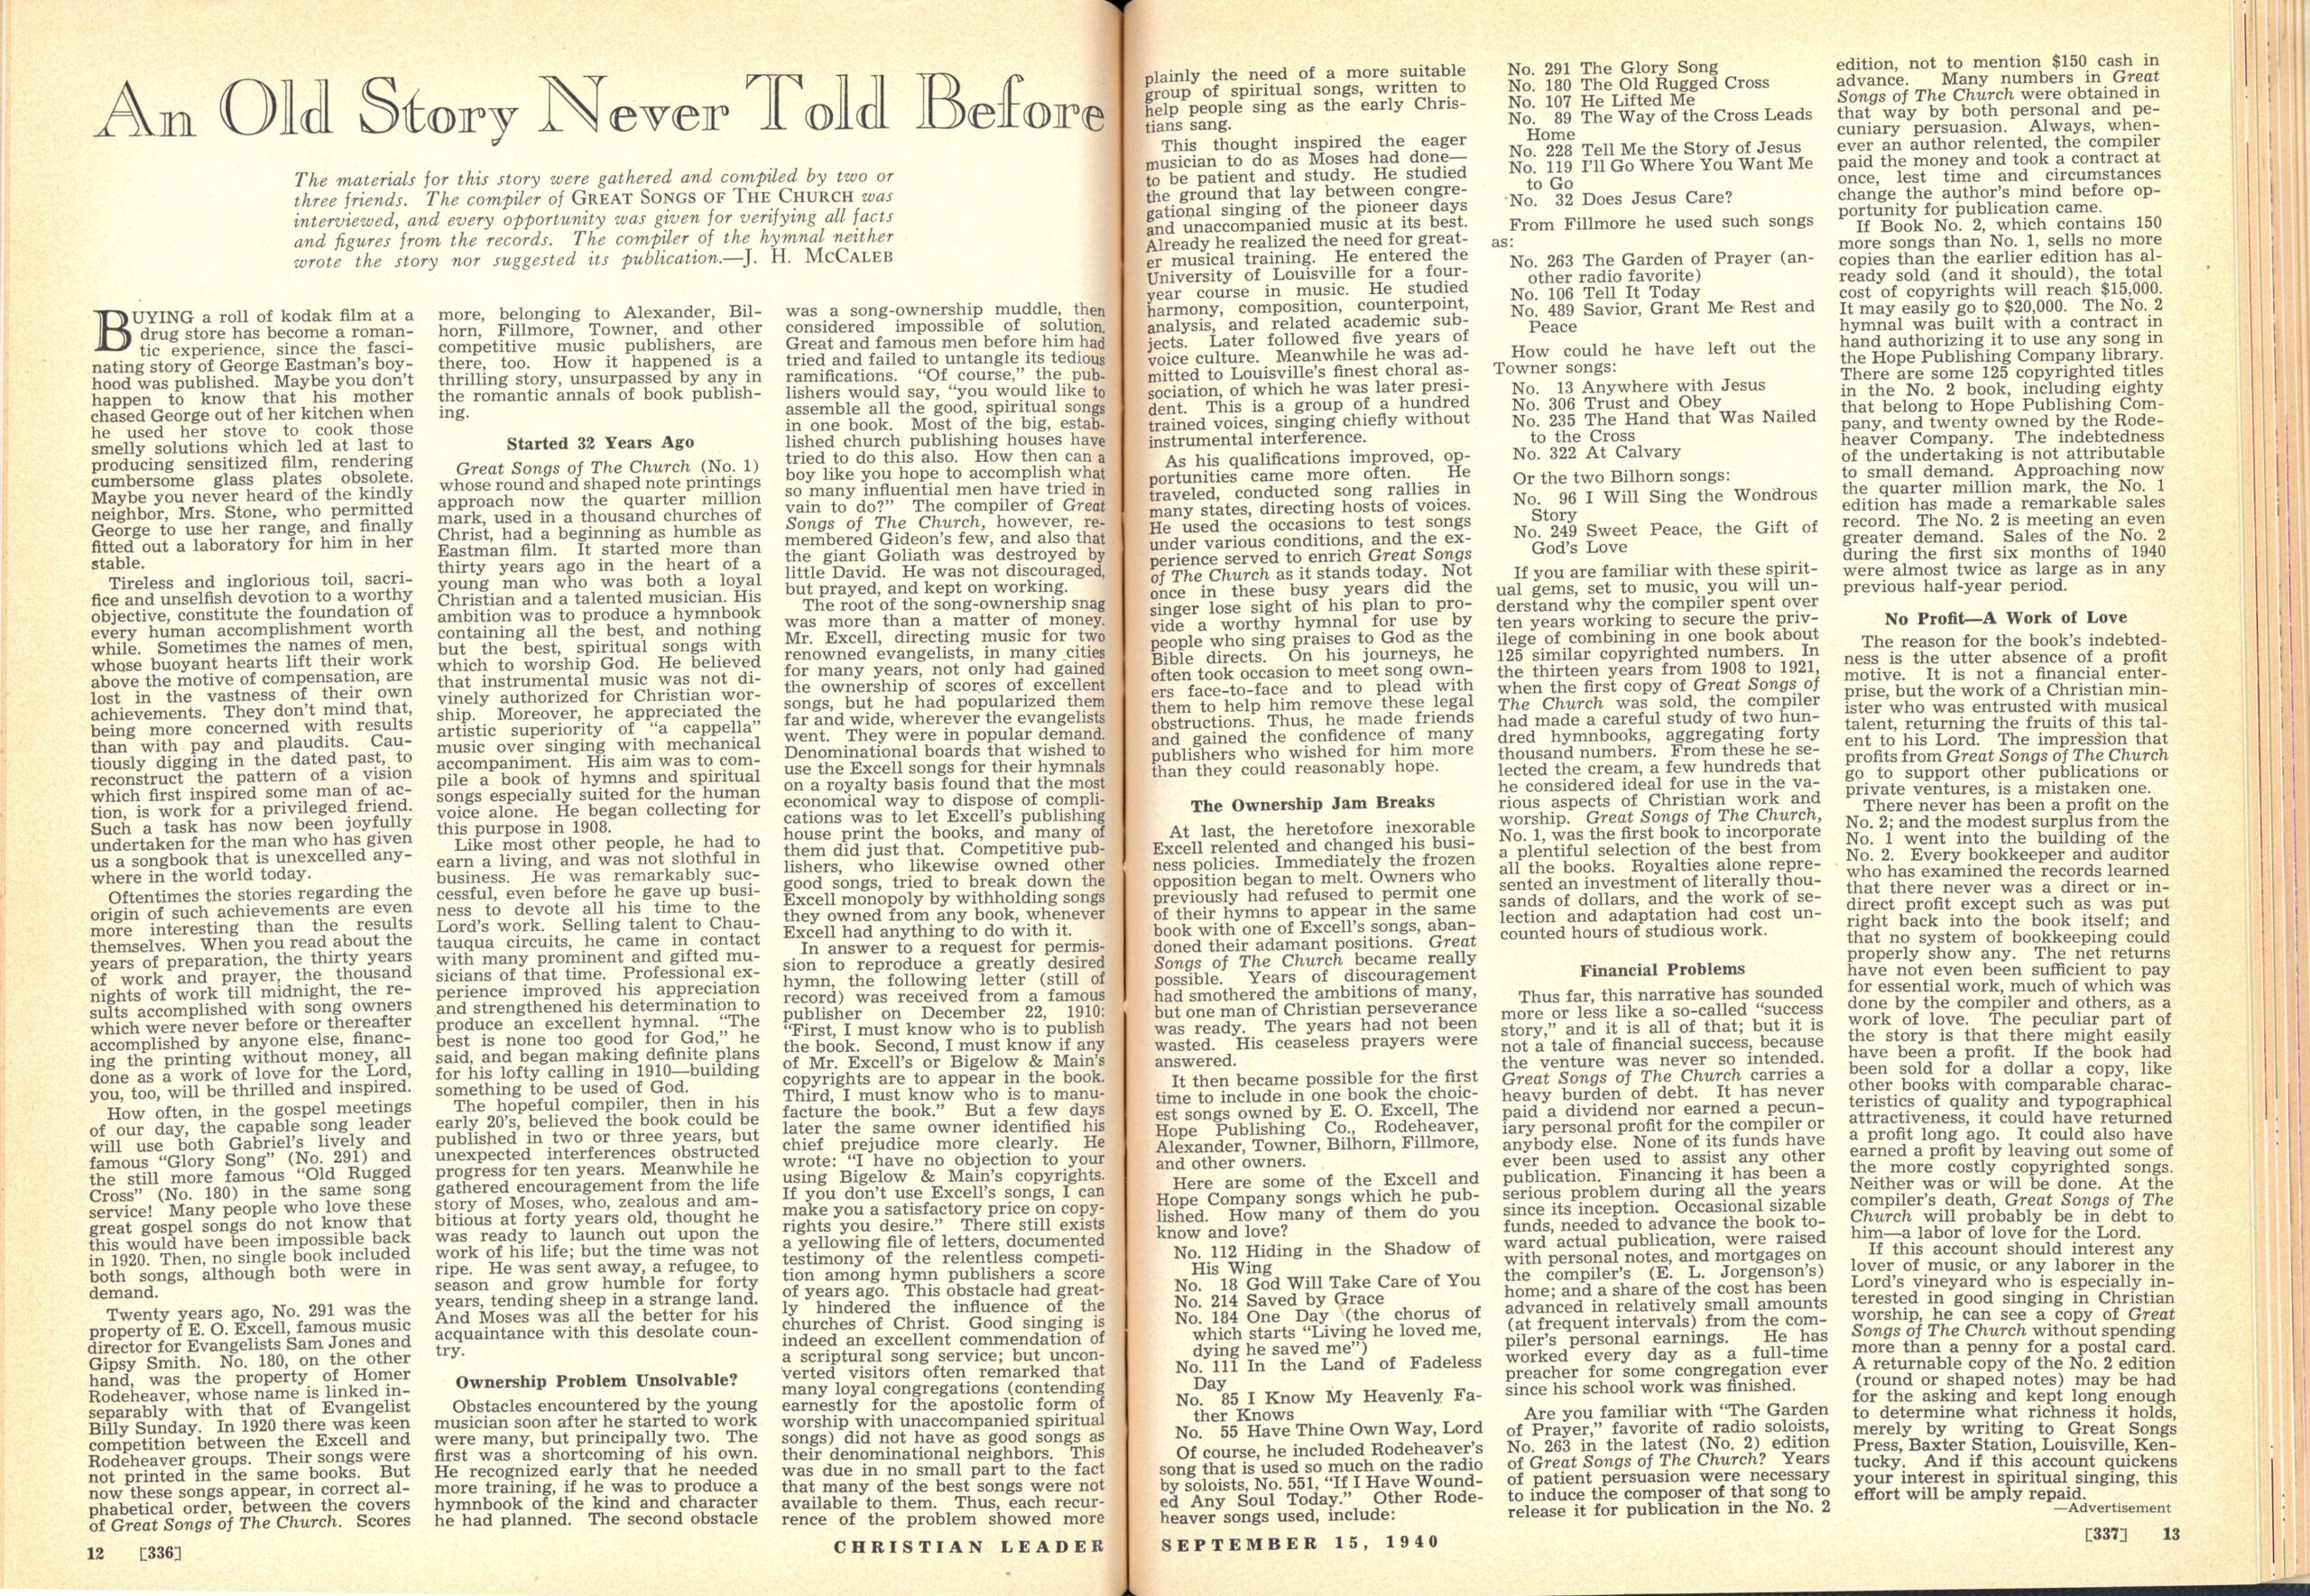 Advertisement, 'An Old Story Never Told,' Christian Leader, September 15, 1940.